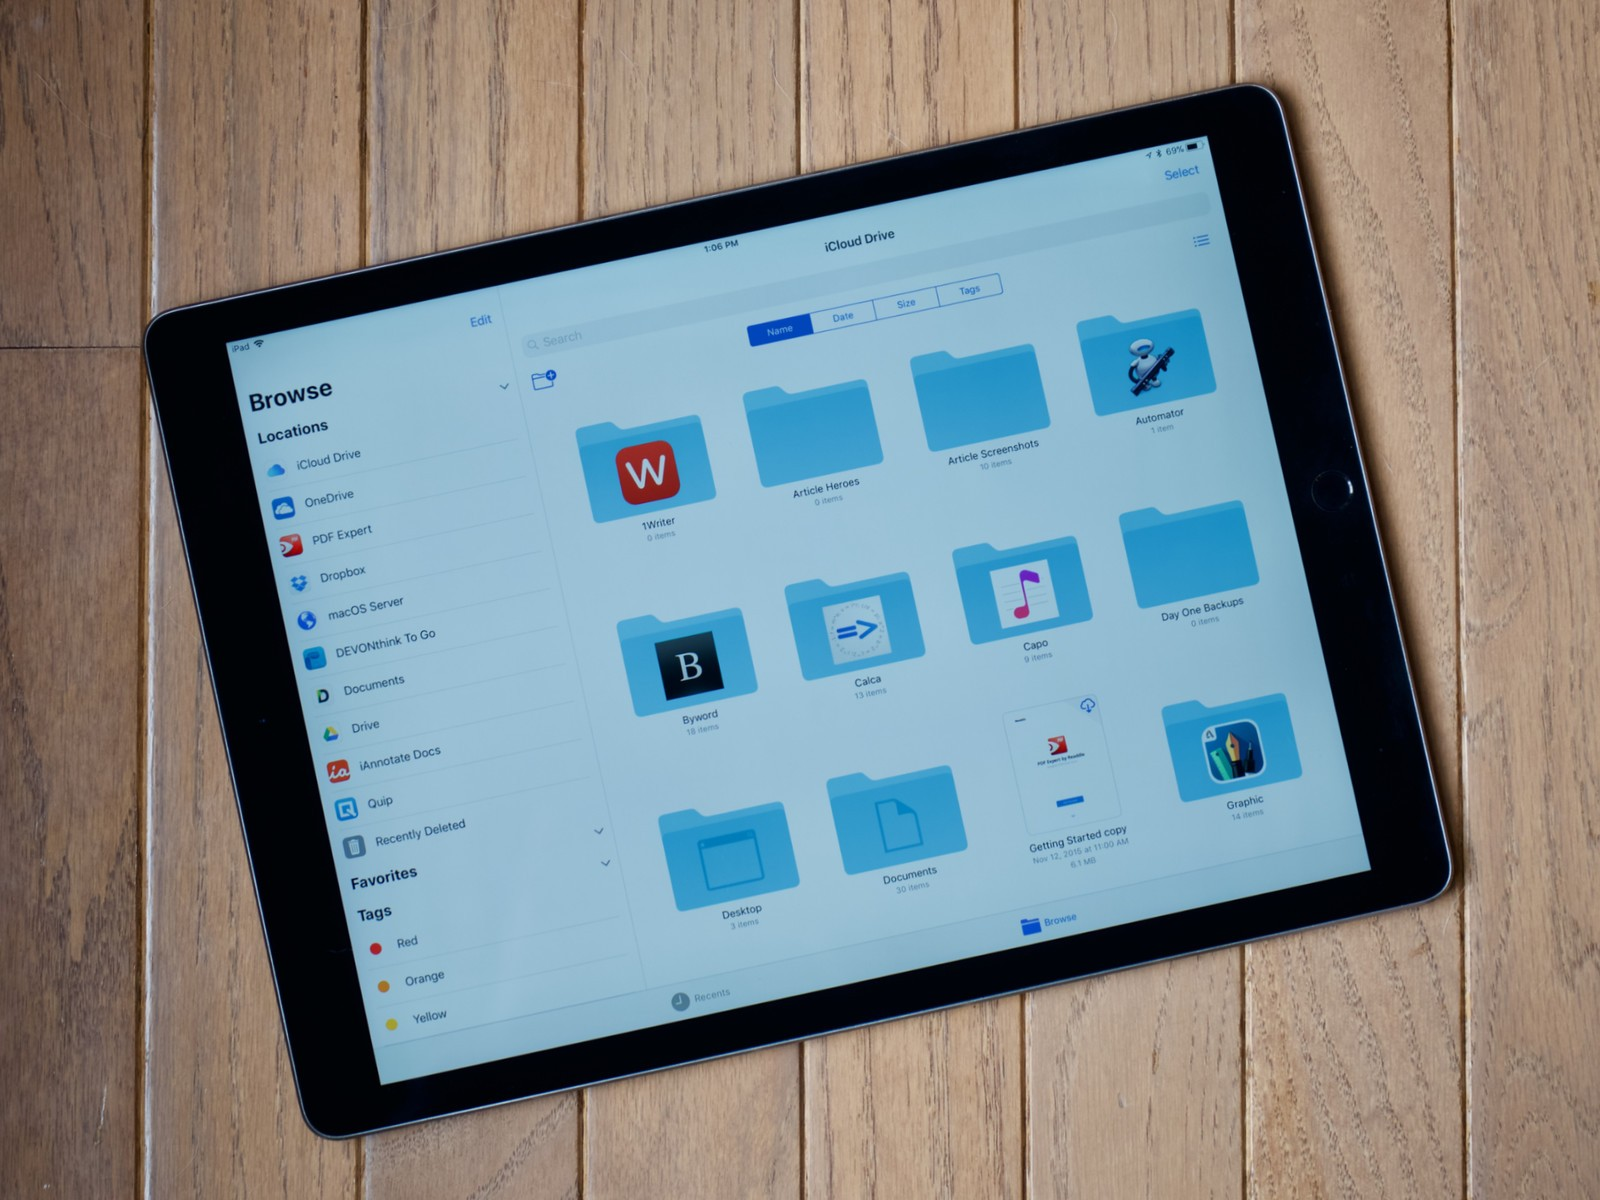 how to see application files on ipad